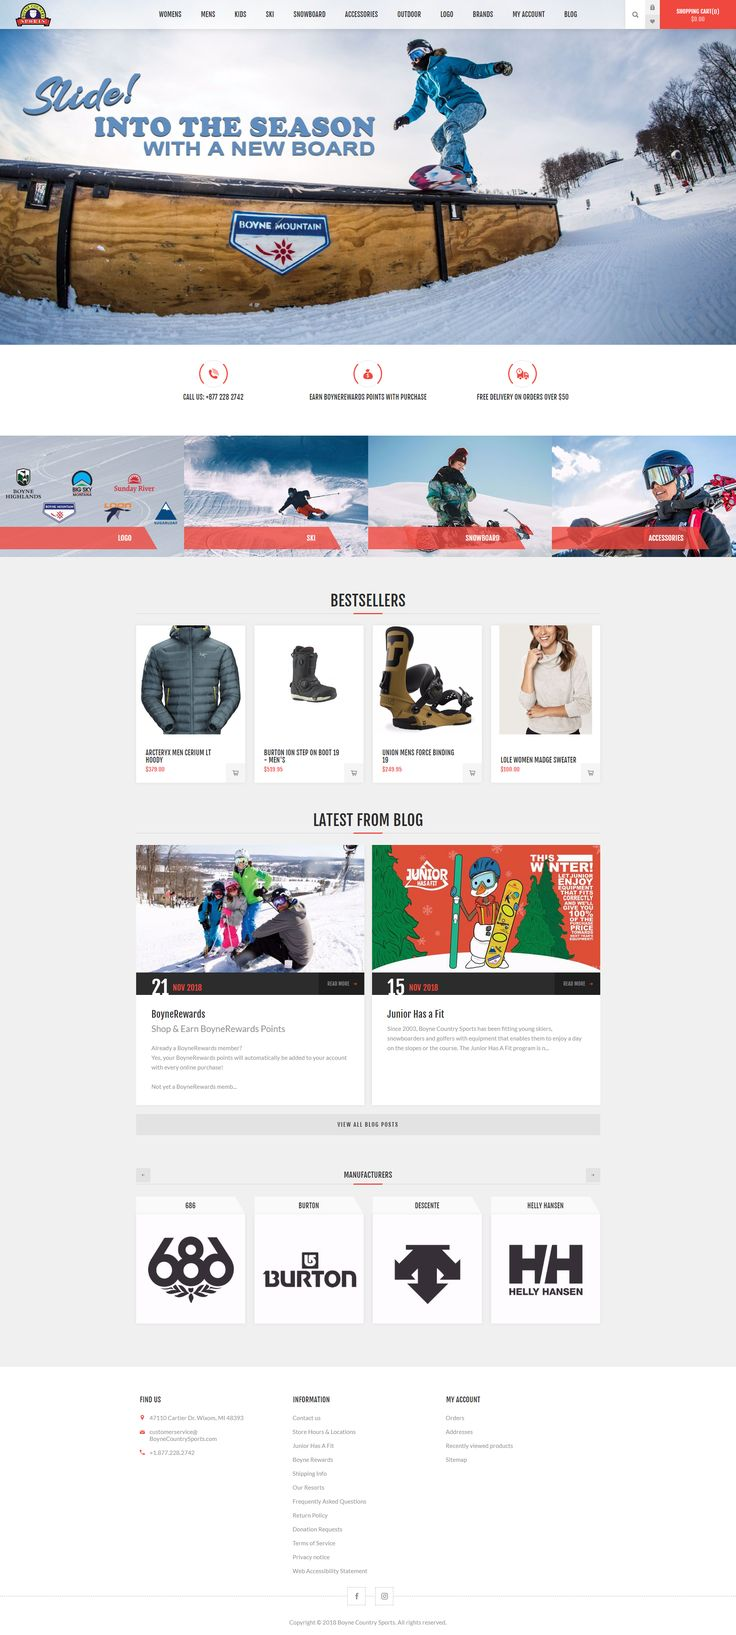 Like this template? You can set up an online store with